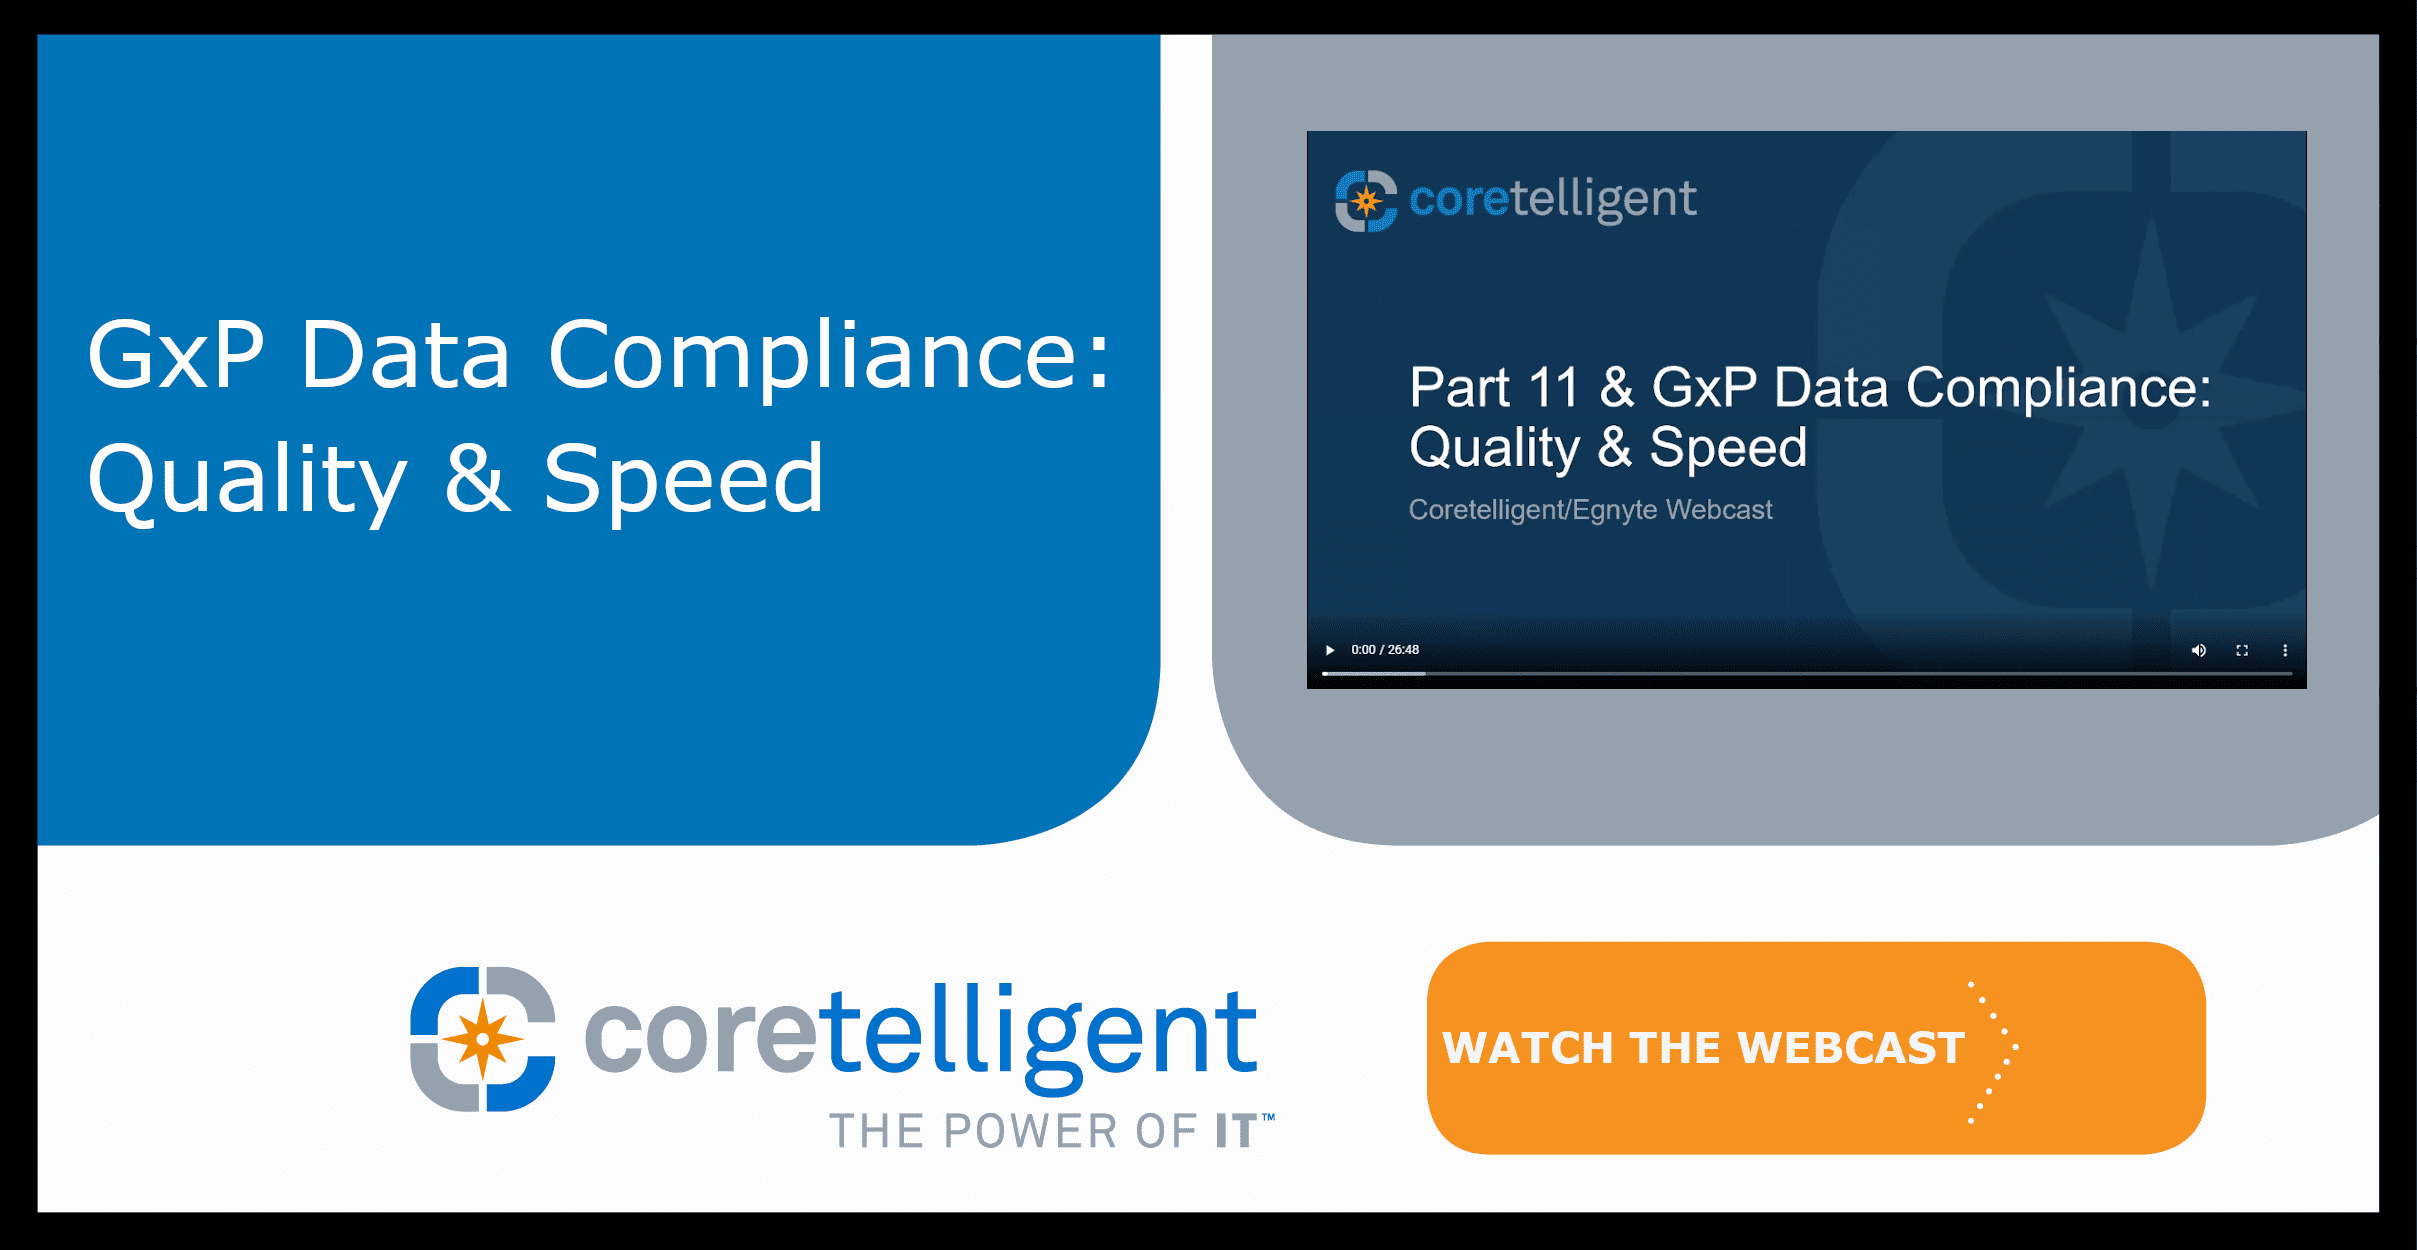 GxP Data Compliance: Quality and Speed Webcast